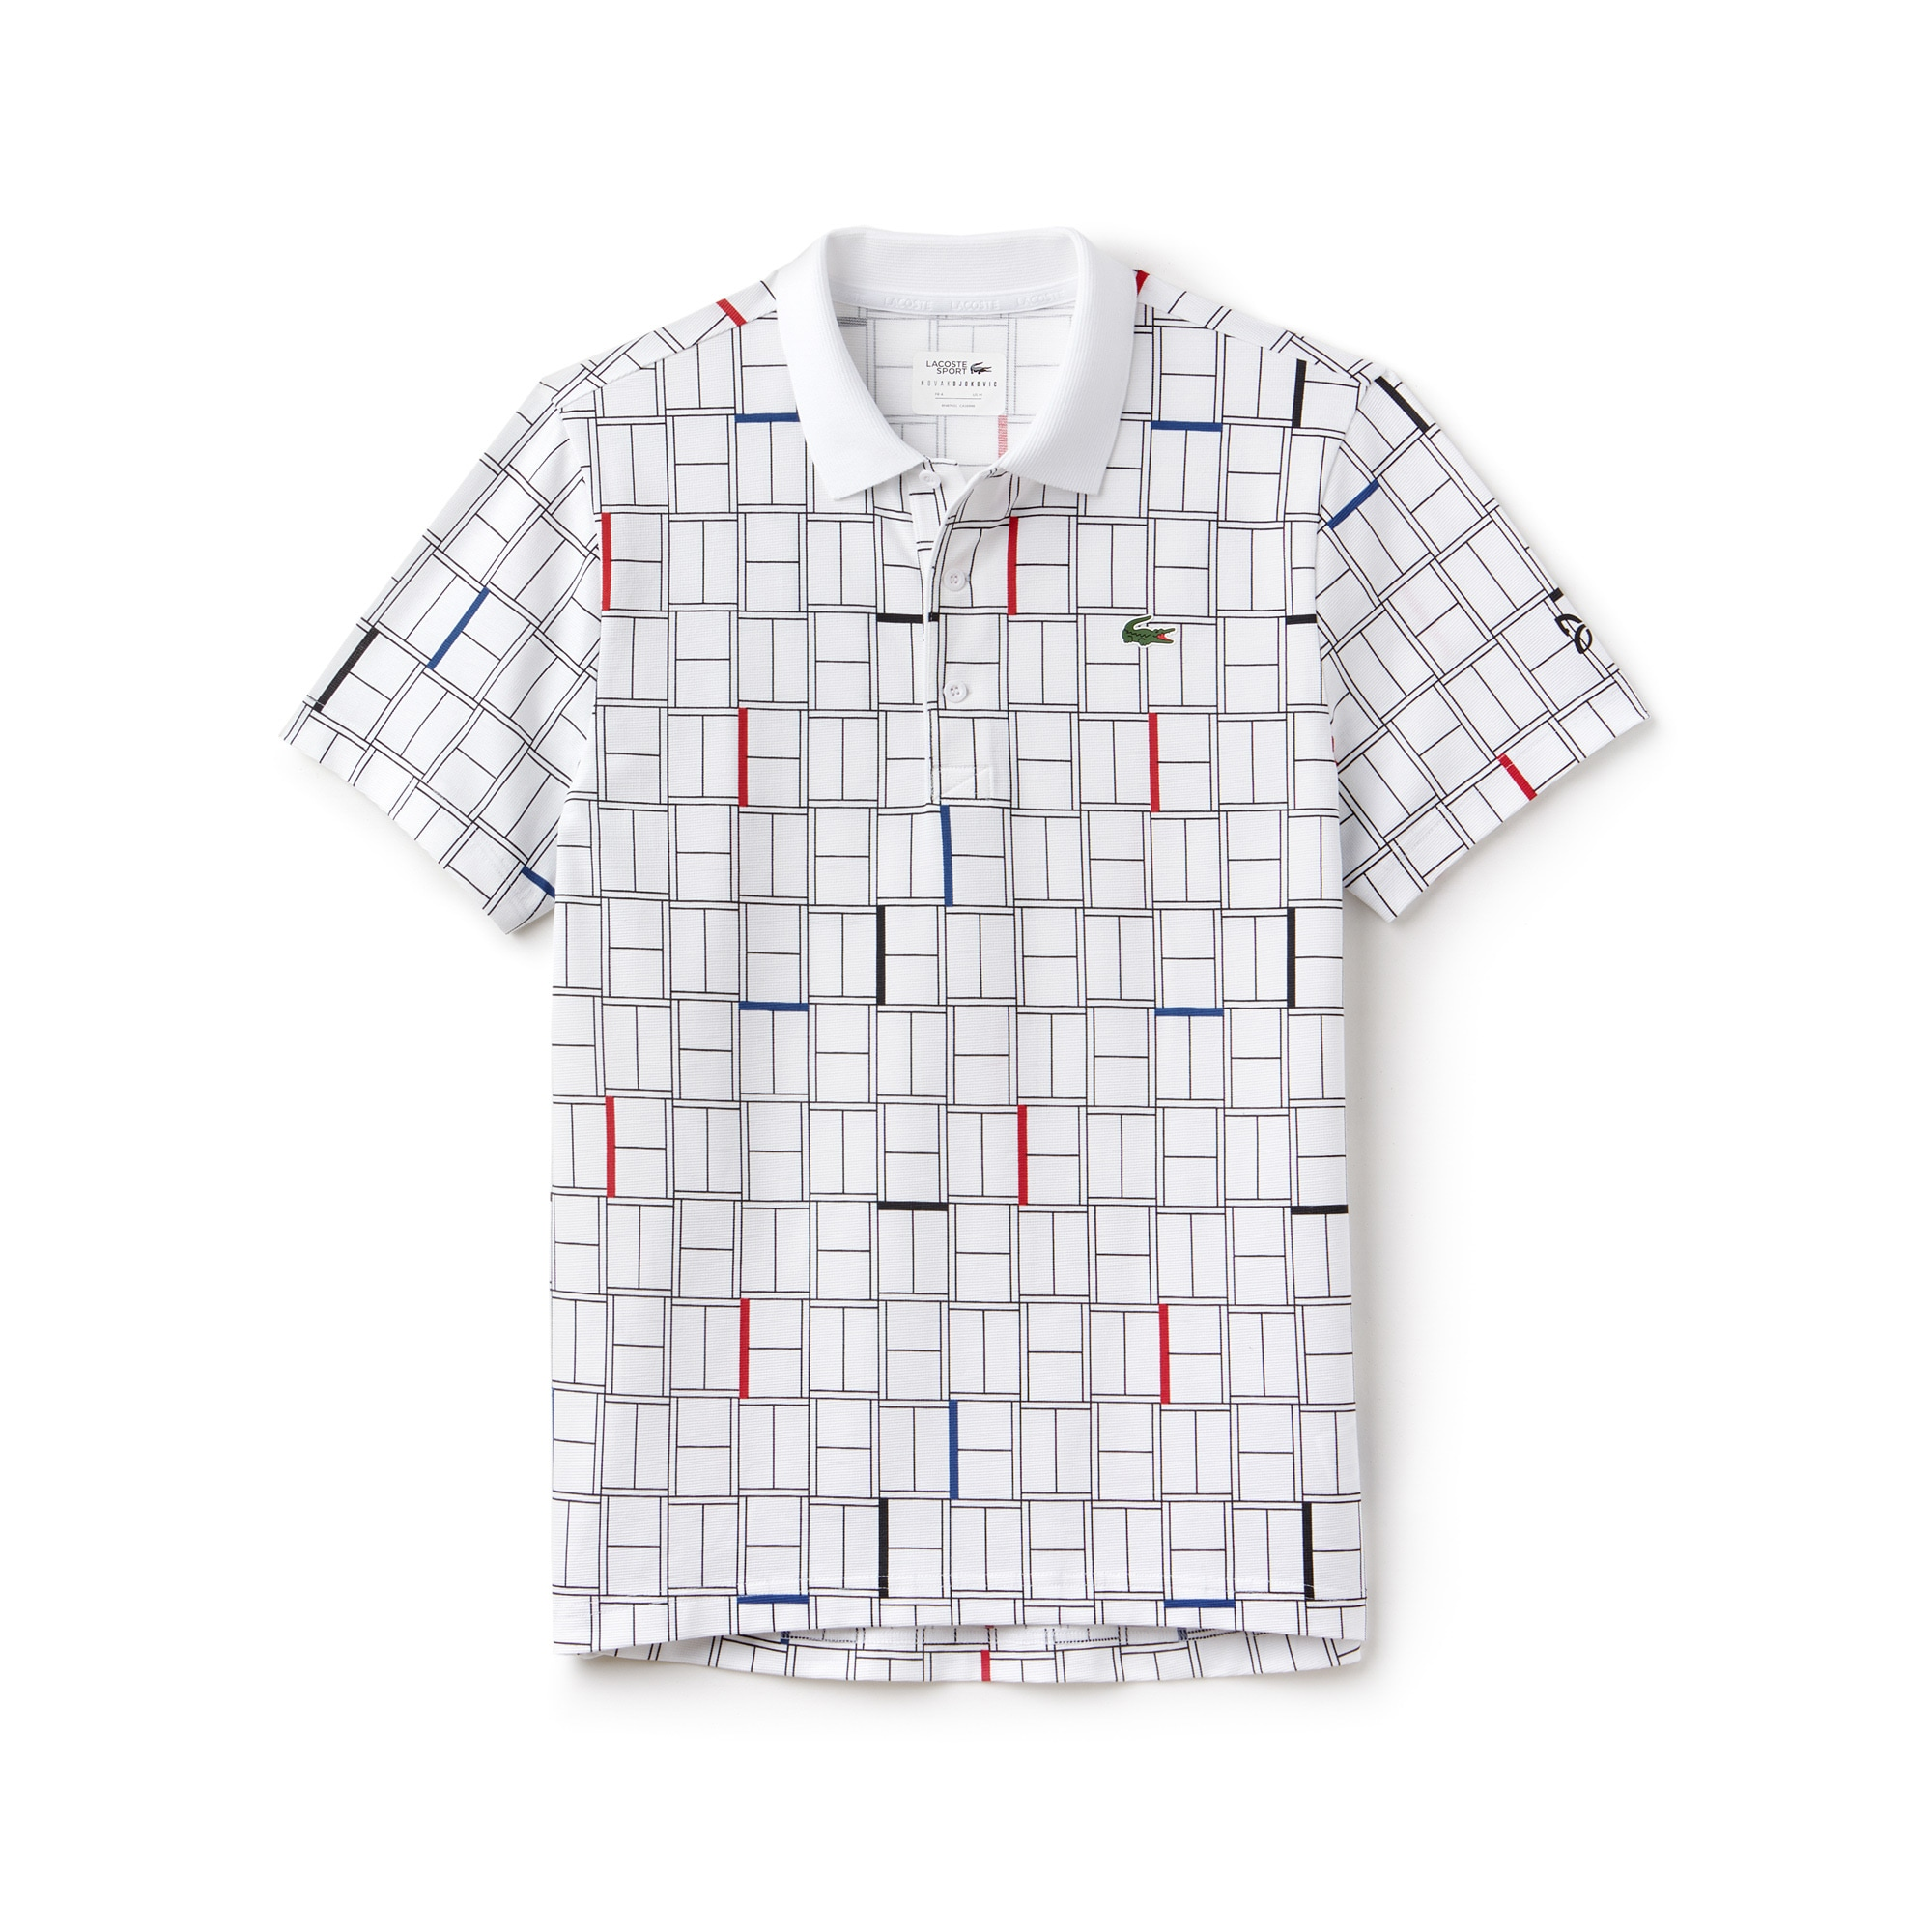 Men's LACOSTE SPORT NOVAK DJOKOVIC COLLECTION Print Ultra-Light Cotton Polo Shirt